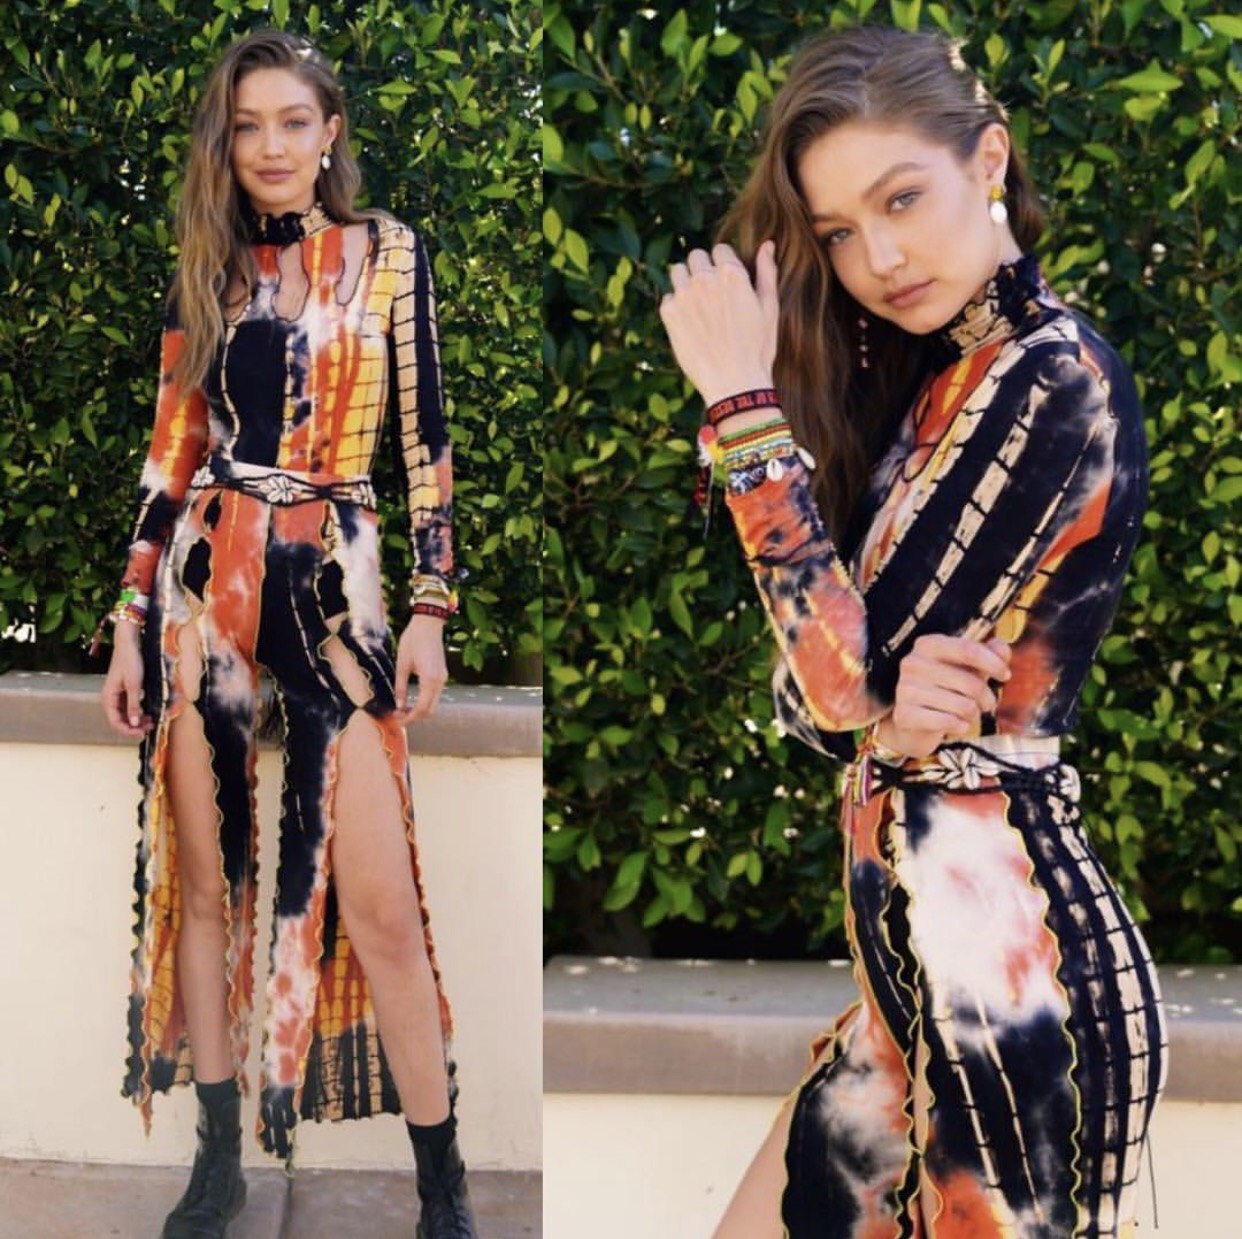 Famous women who create creative bohemian festival styles by combining high fashion brands